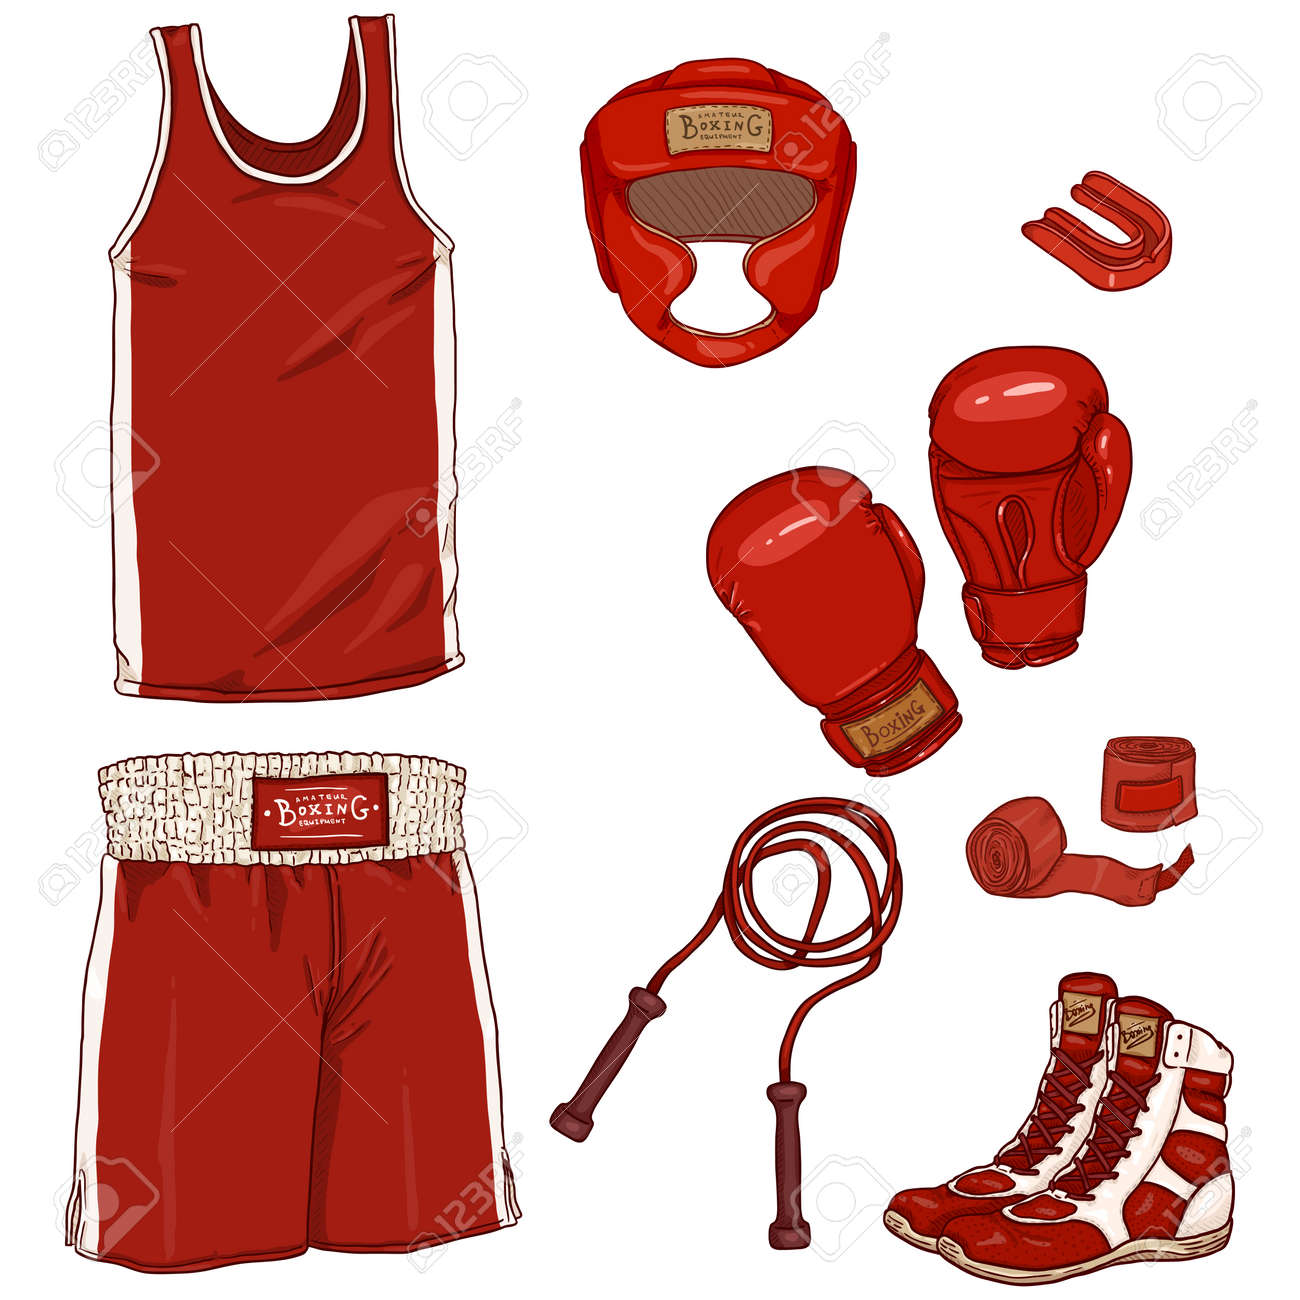 Vector Set of Cartoon Red Boxing Equipment. Helmet, Uniform, Gloves, Hand Wrapes, Mouthpiece and Shoes - 168798649